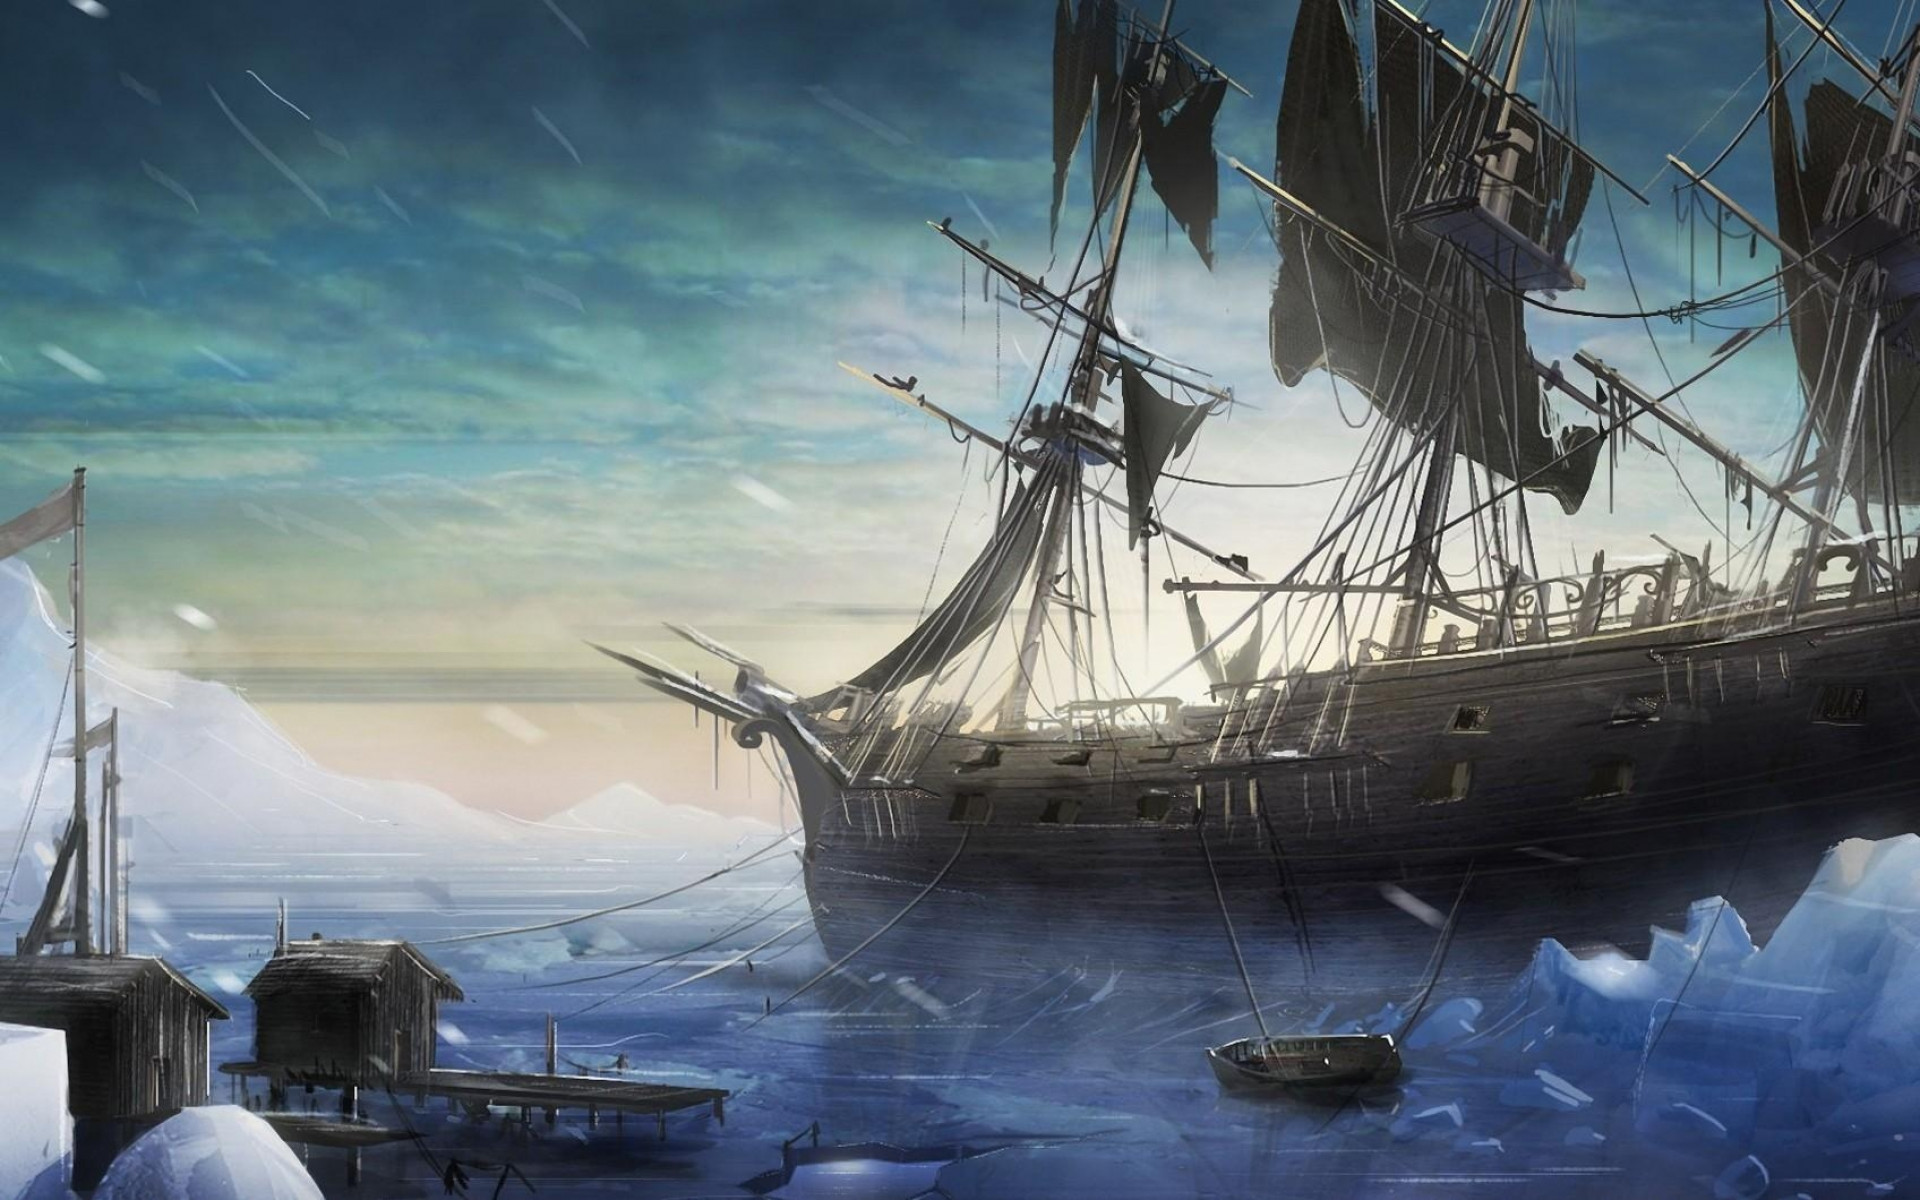 Res: 1920x1200, Sea, Flagship, Tall Ship, Ship of The Line, Ship HD Wallpaper, Other  Picture, Background and Image